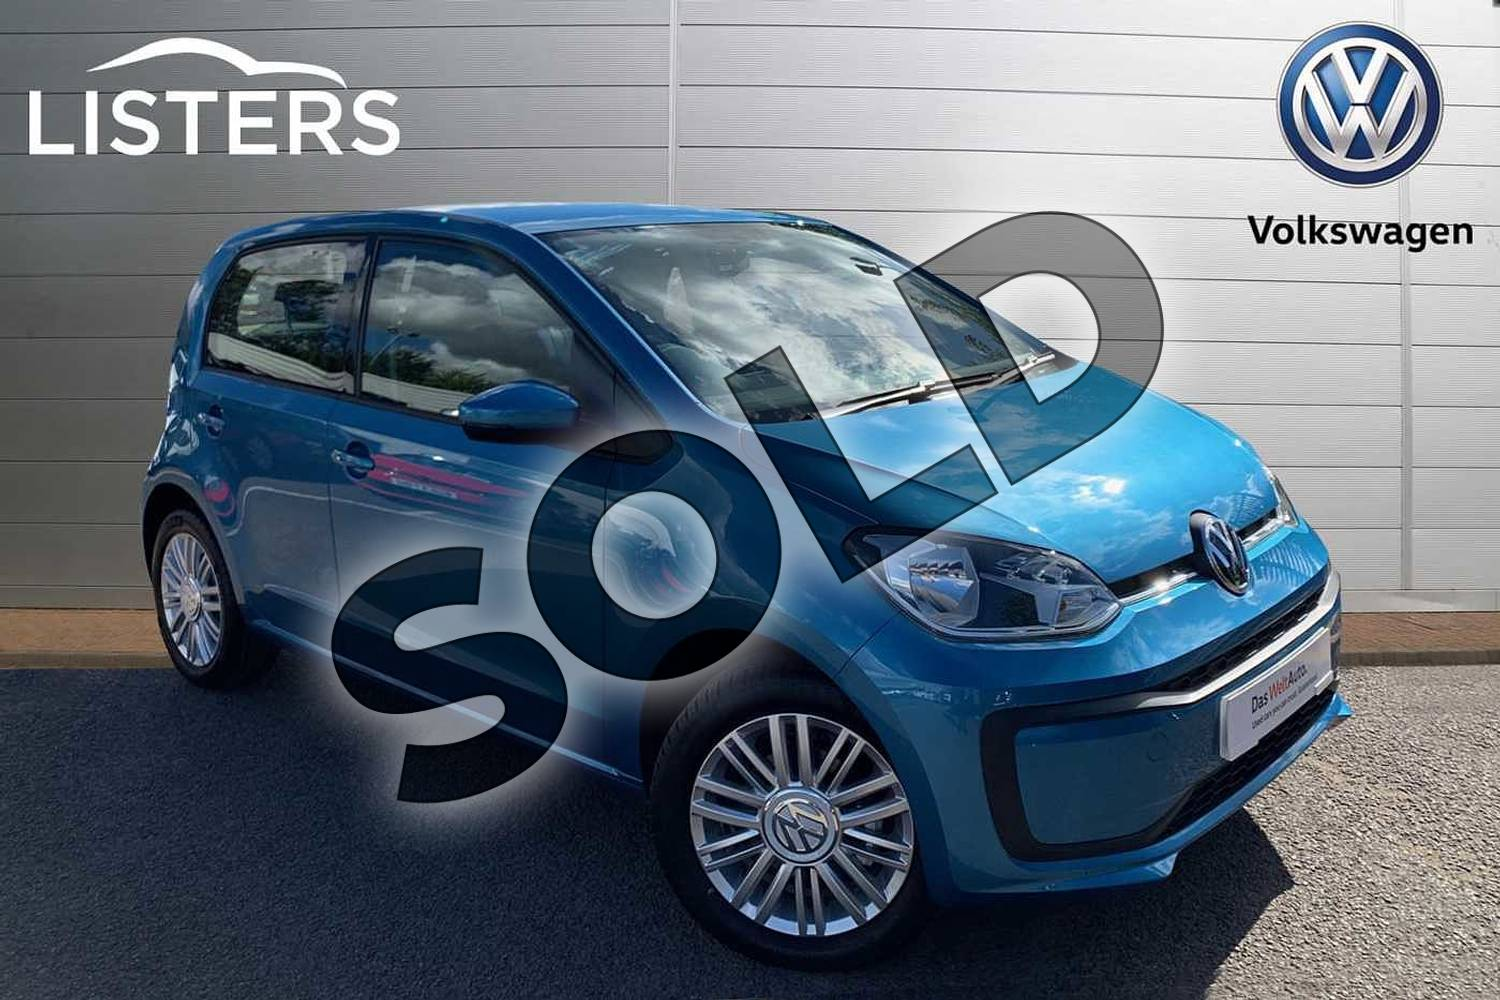 2019 Volkswagen Up Hatchback 1.0 Move Up 5dr in Costa Azule at Listers Volkswagen Leamington Spa